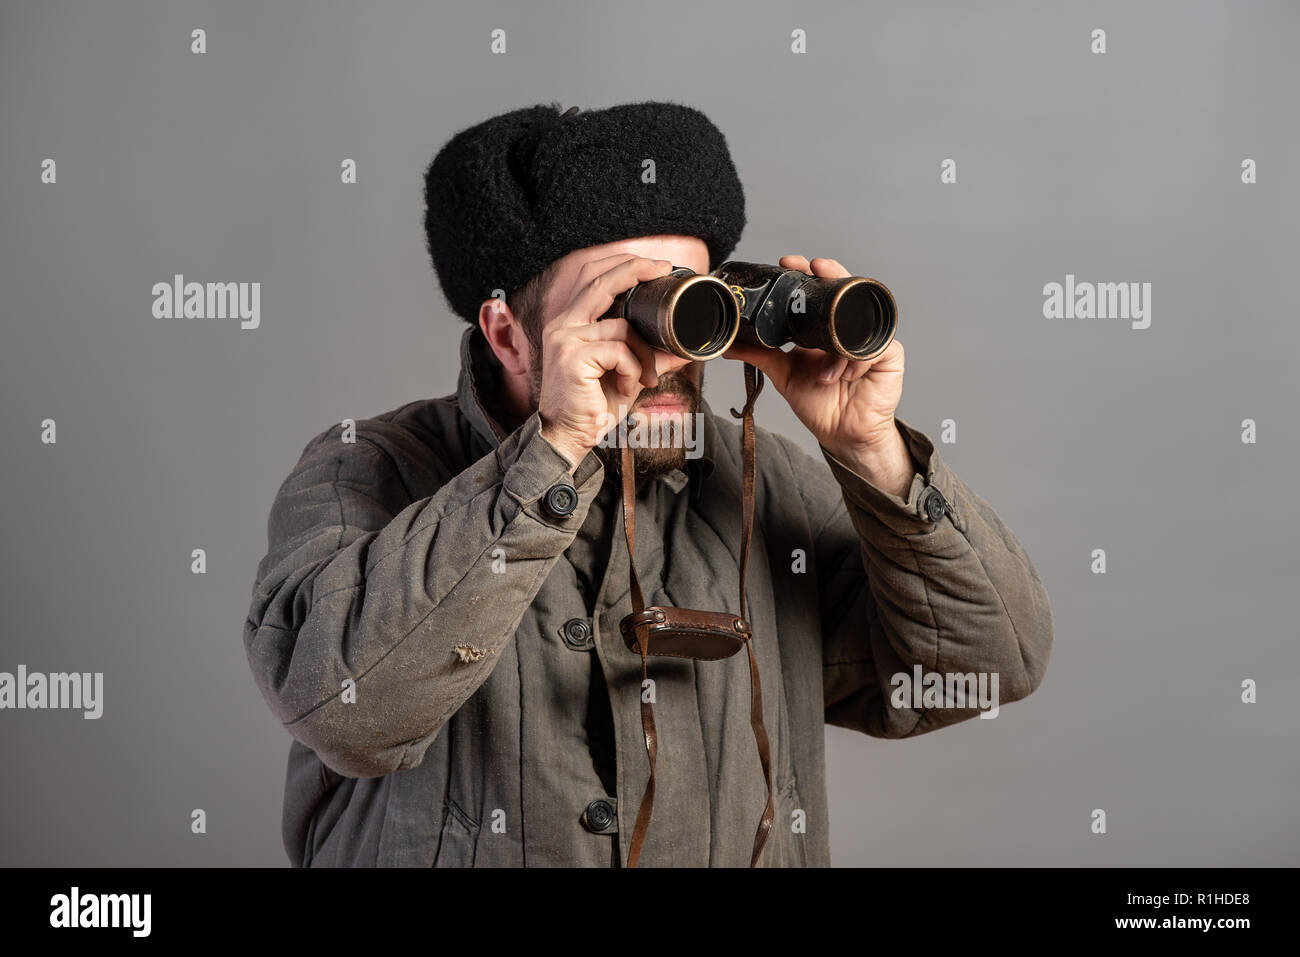 Soviet soldier with binoculars on guard, retro uniform. Second World War theme - Stock Image